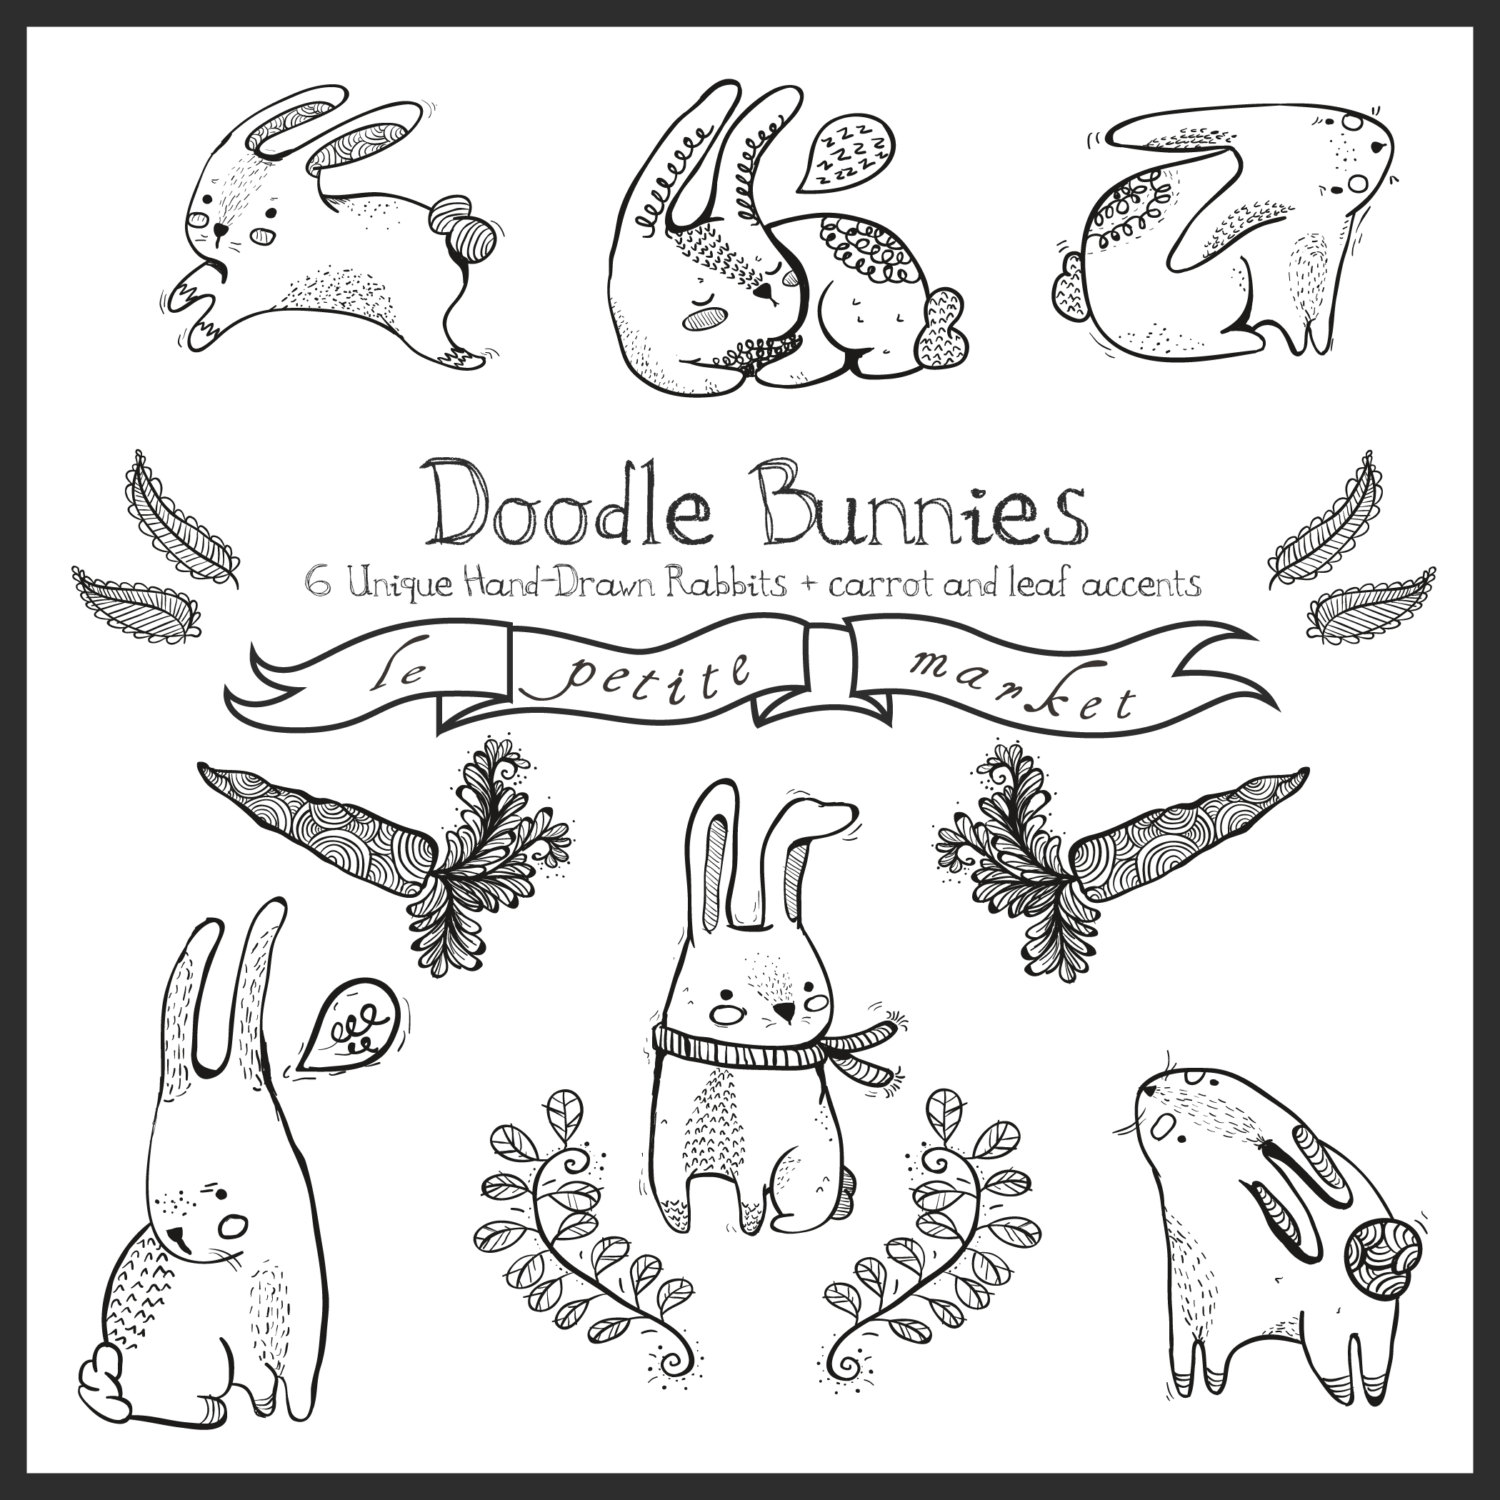 Drawn rabbit basic Bunny Cute digital Doodly Bunnies